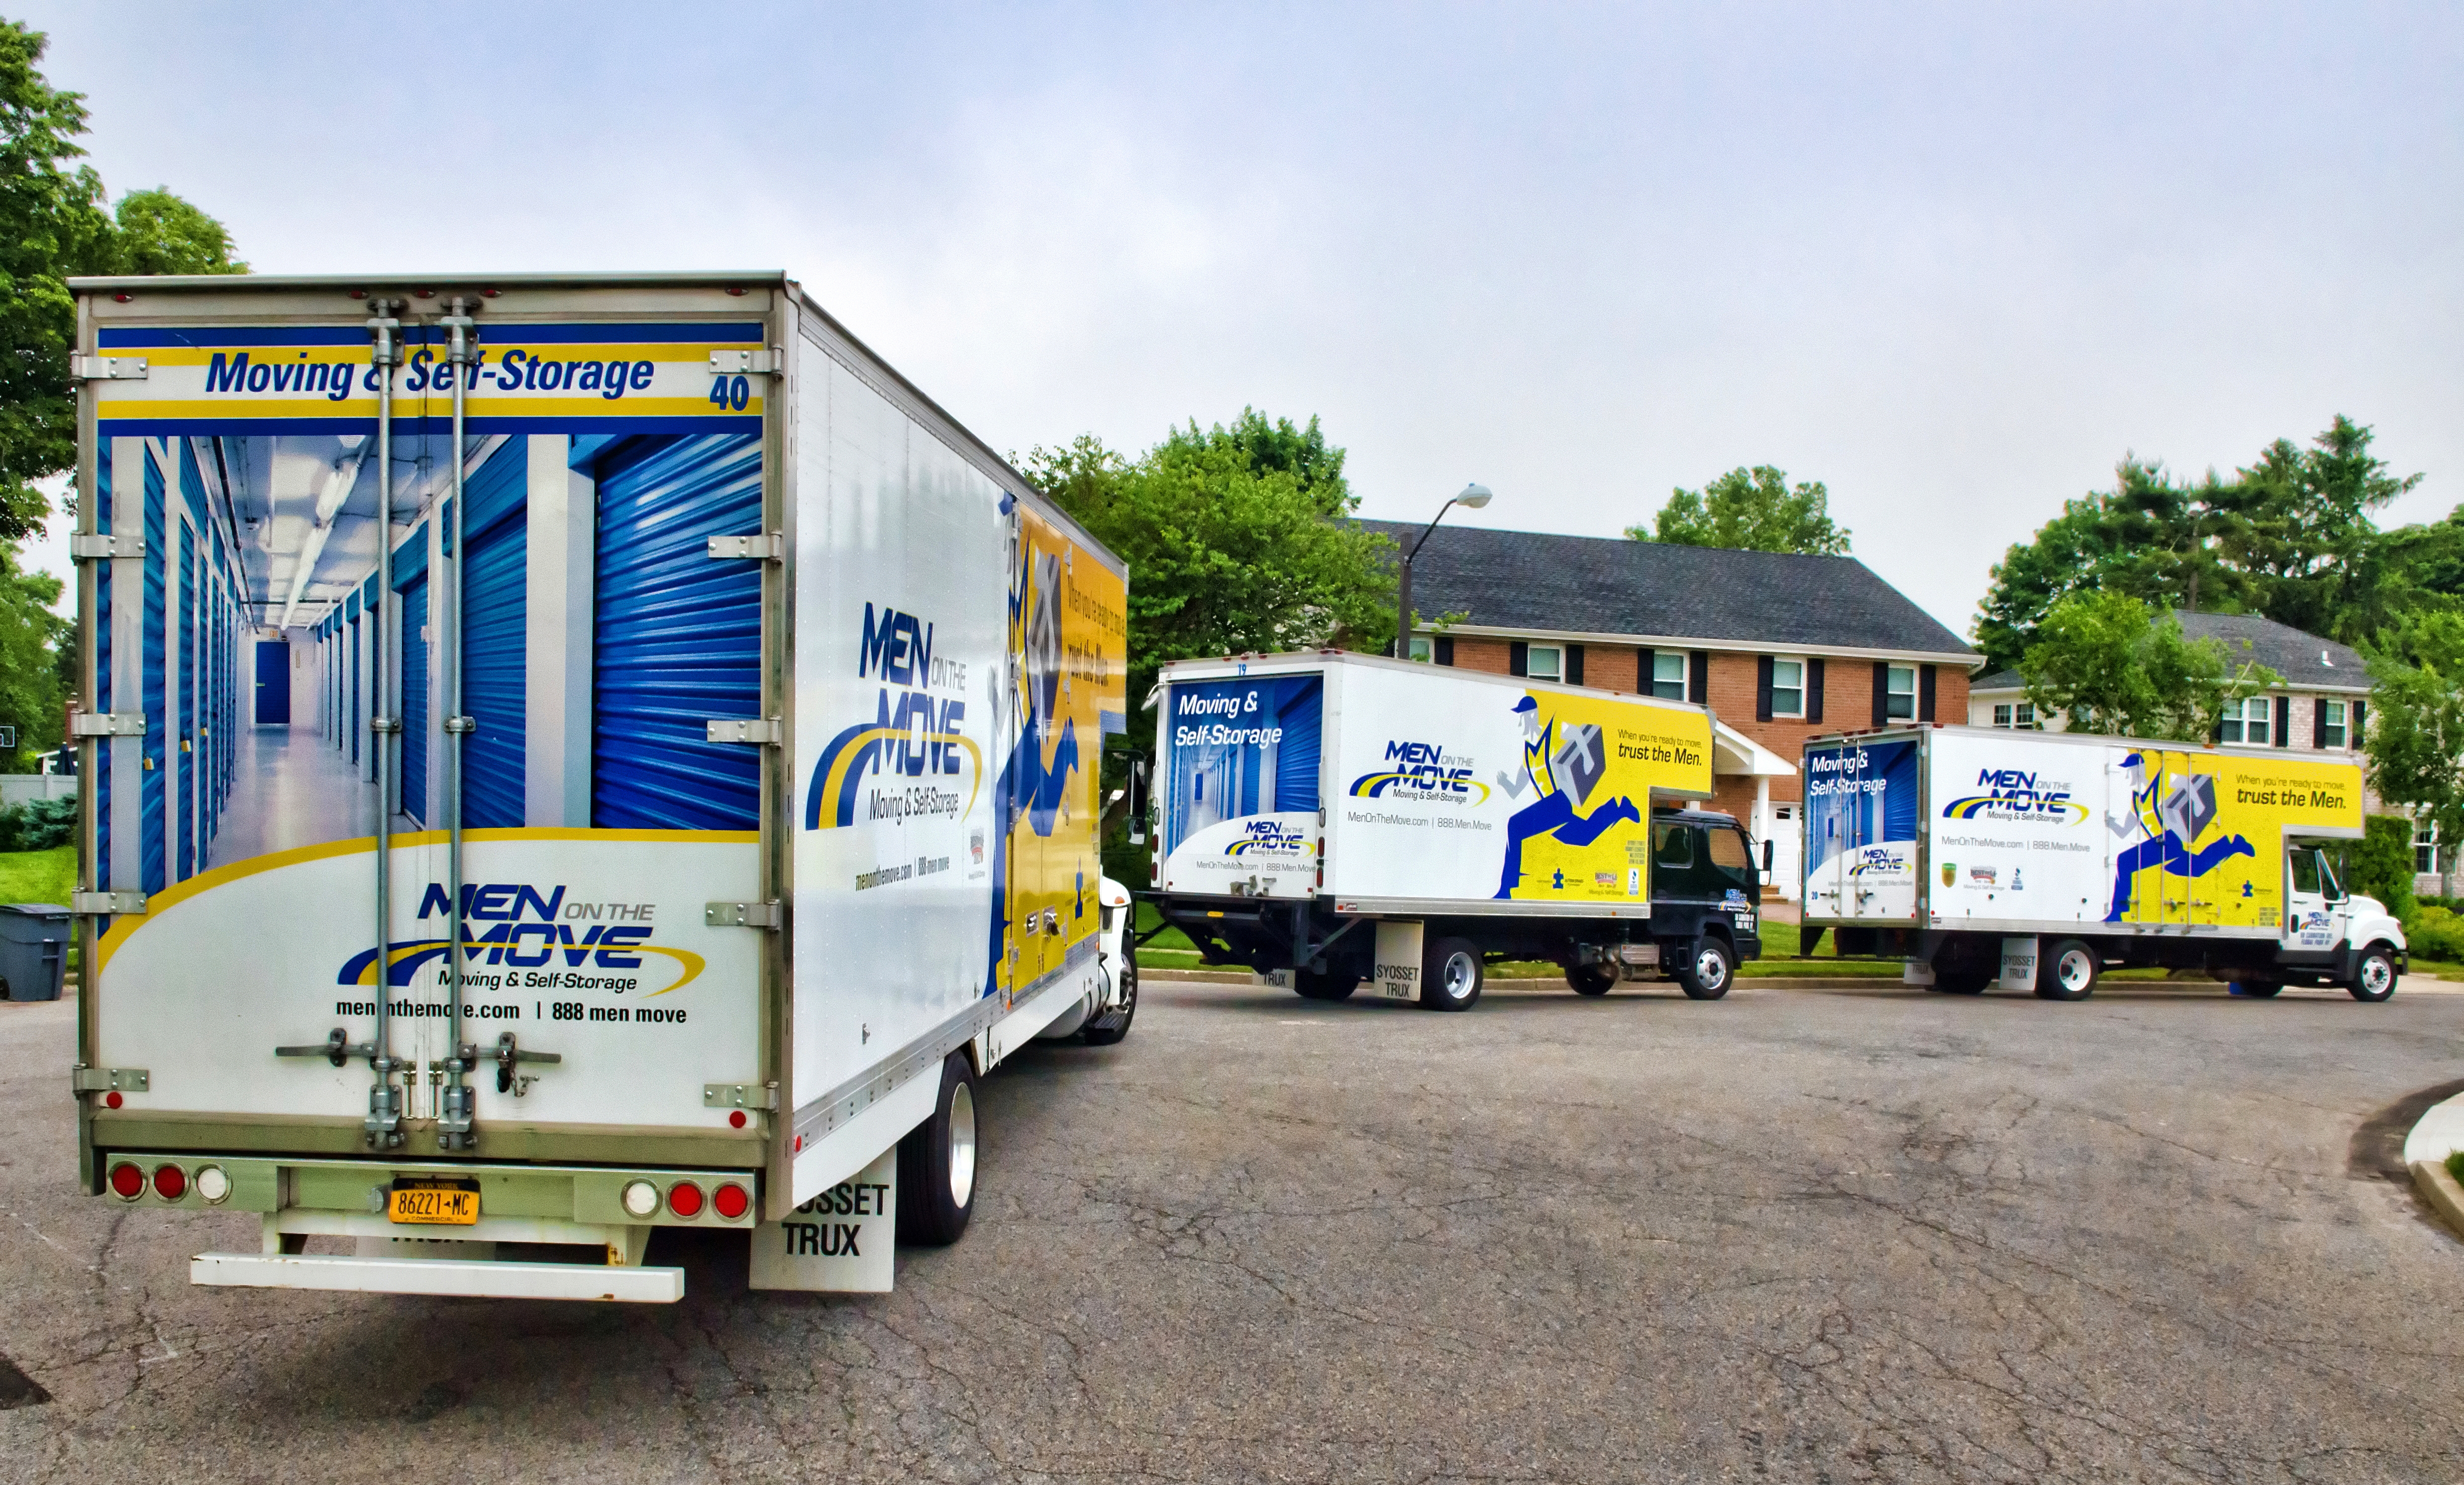 Men On The Move Moving & Self-Storage About Us - Long Island, NY